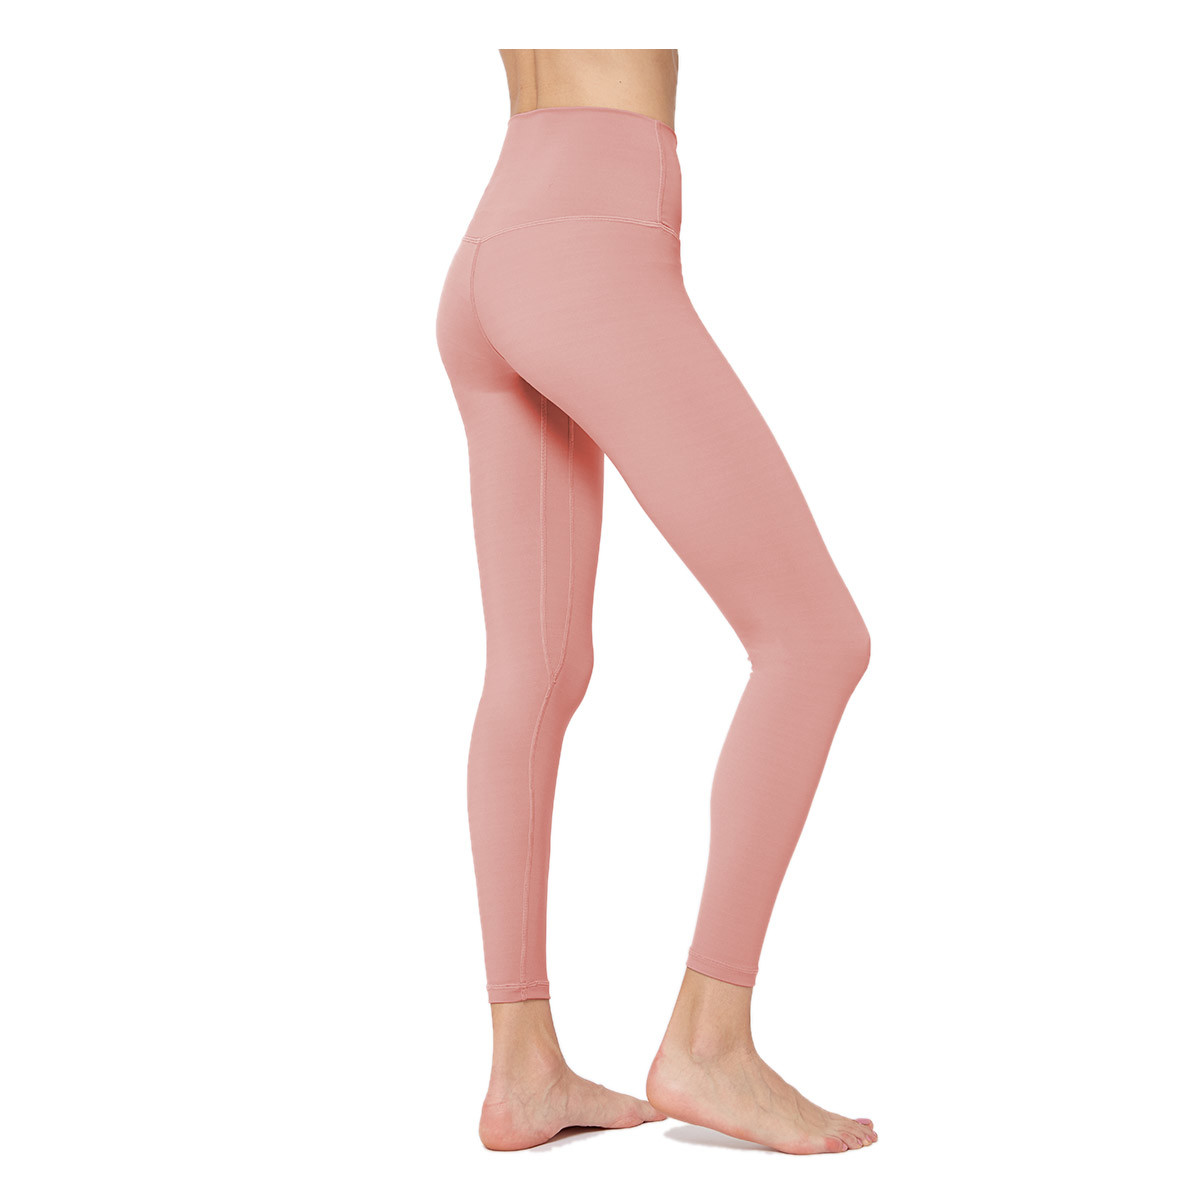 Women Tights Leggings Cheap Workout Pants For Dressy or Casual Occasions